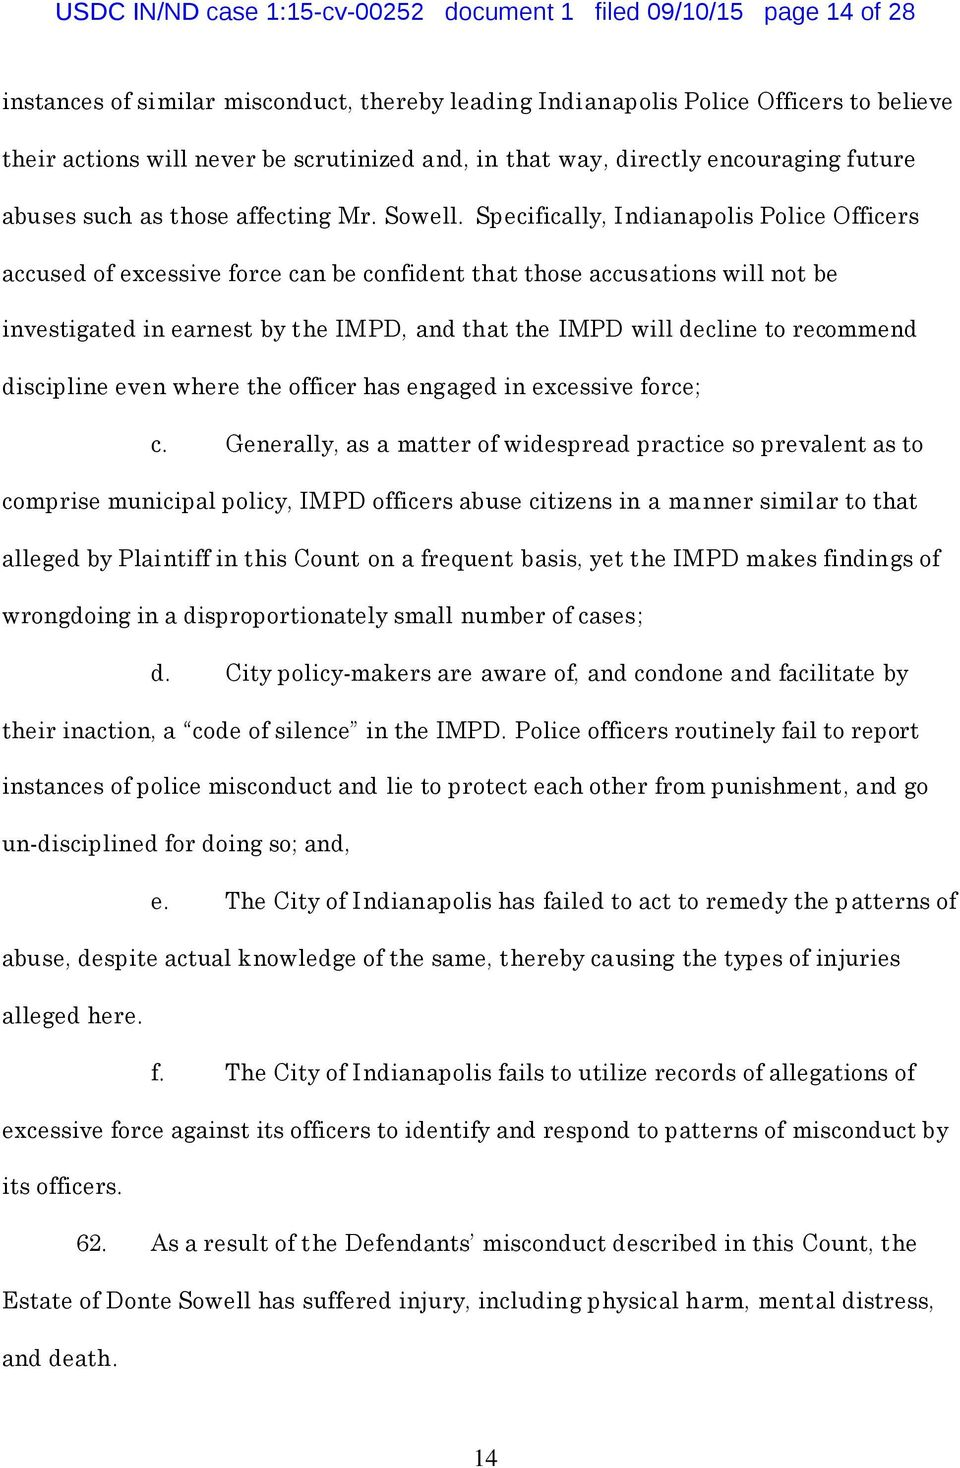 Specifically, Indianapolis Police Officers accused of excessive force can be confident that those accusations will not be investigated in earnest by the IMPD, and that the IMPD will decline to